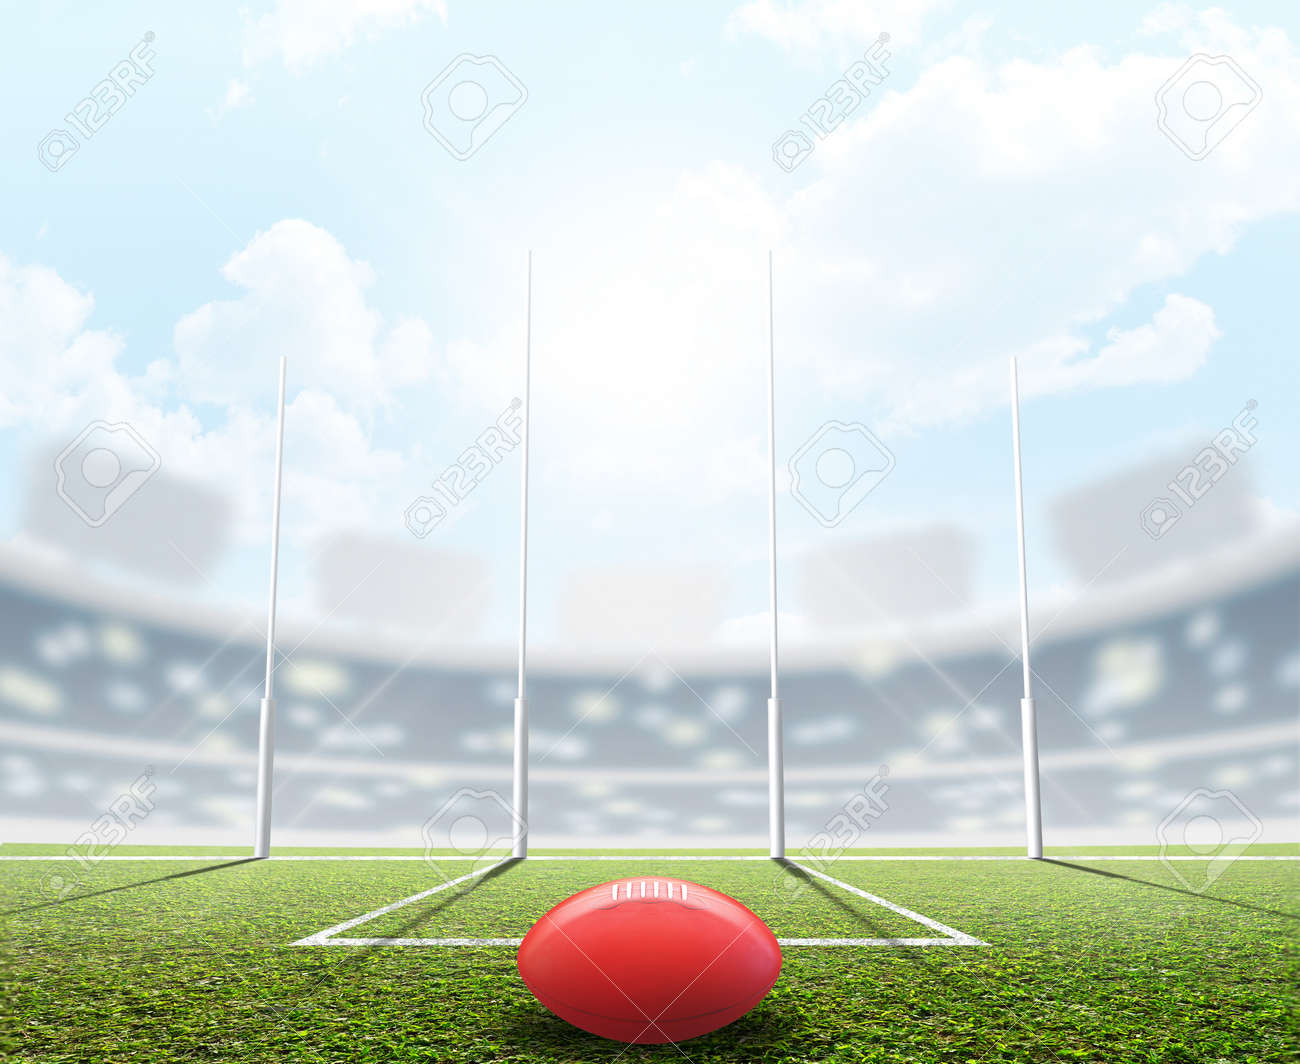 An aussie rules football stadium with a ball and goal posts in the daytime under a blue sky - 3D render - 89823330